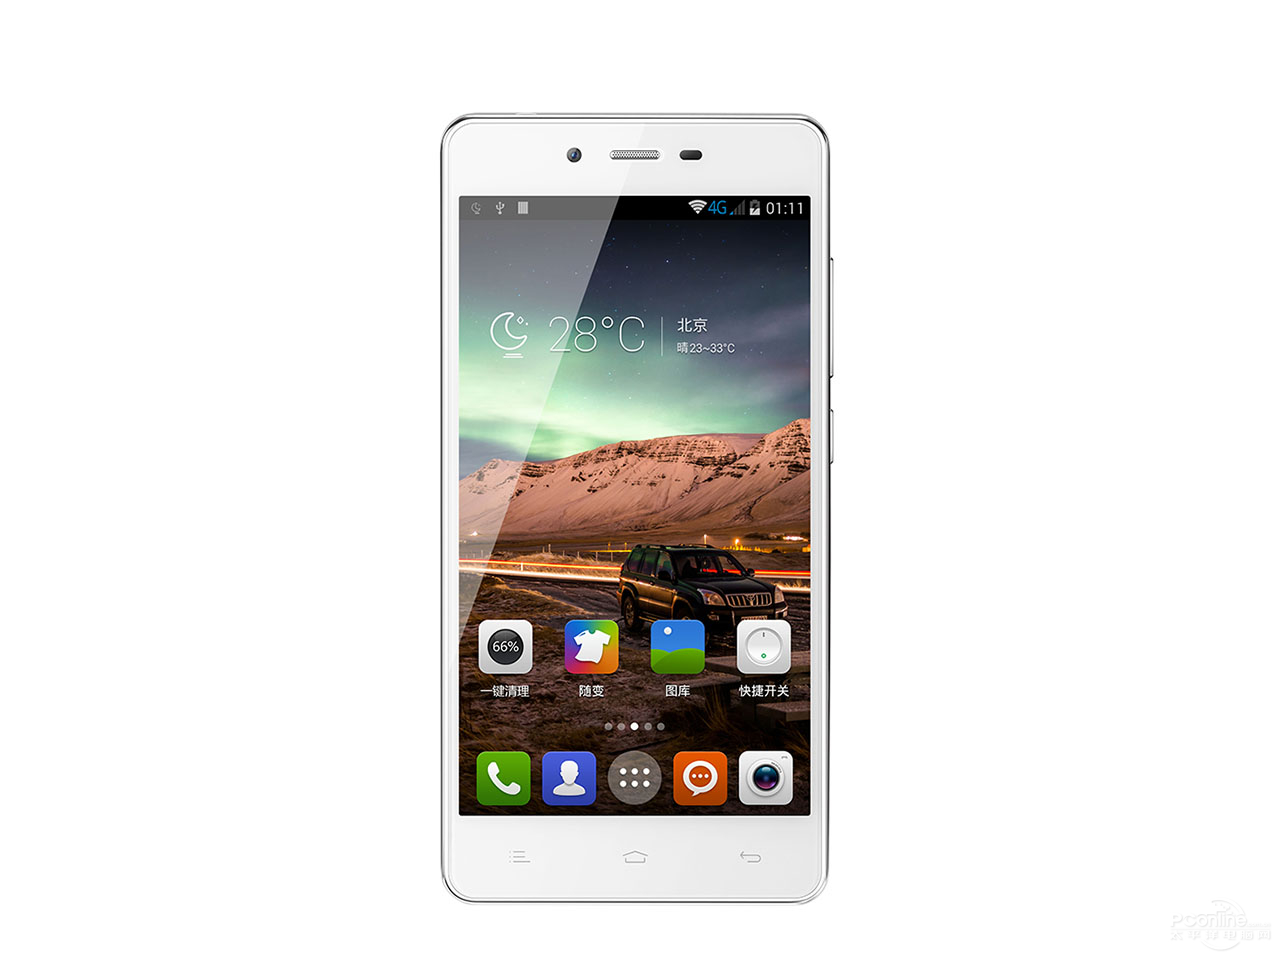 Gionee V188S front view